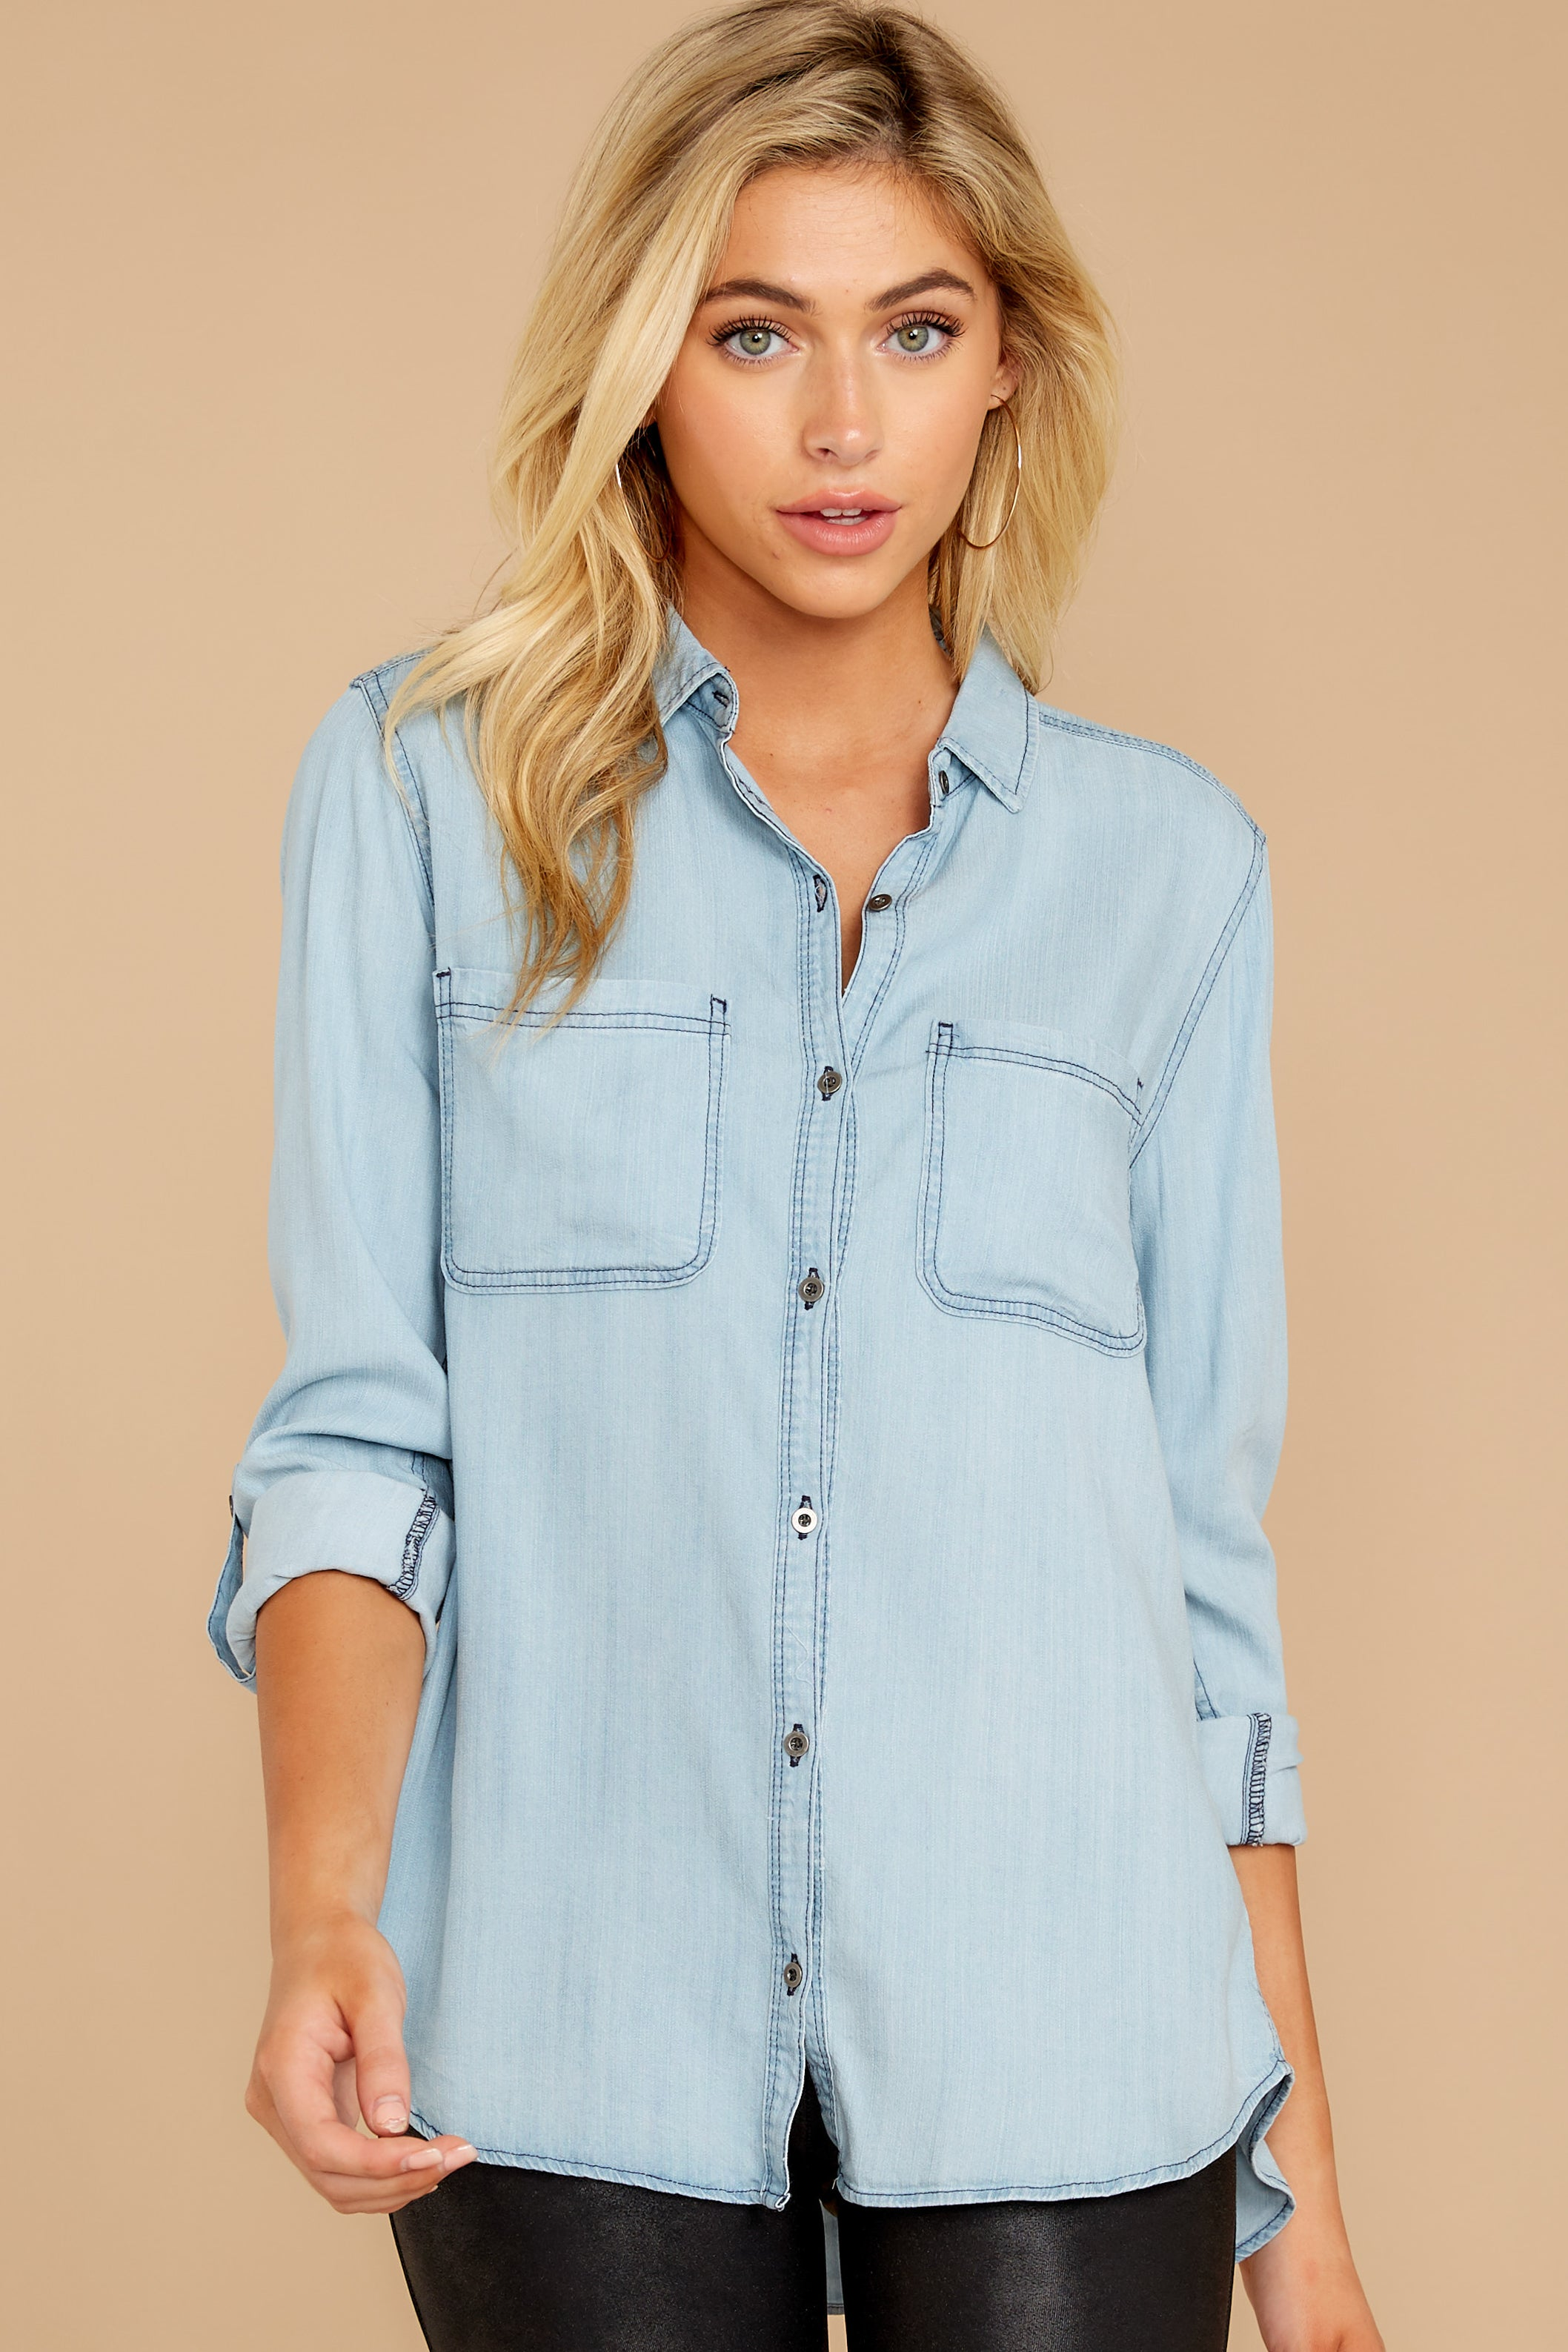 4 Wander Free Light Chambray Button Up Top at reddressboutique.com